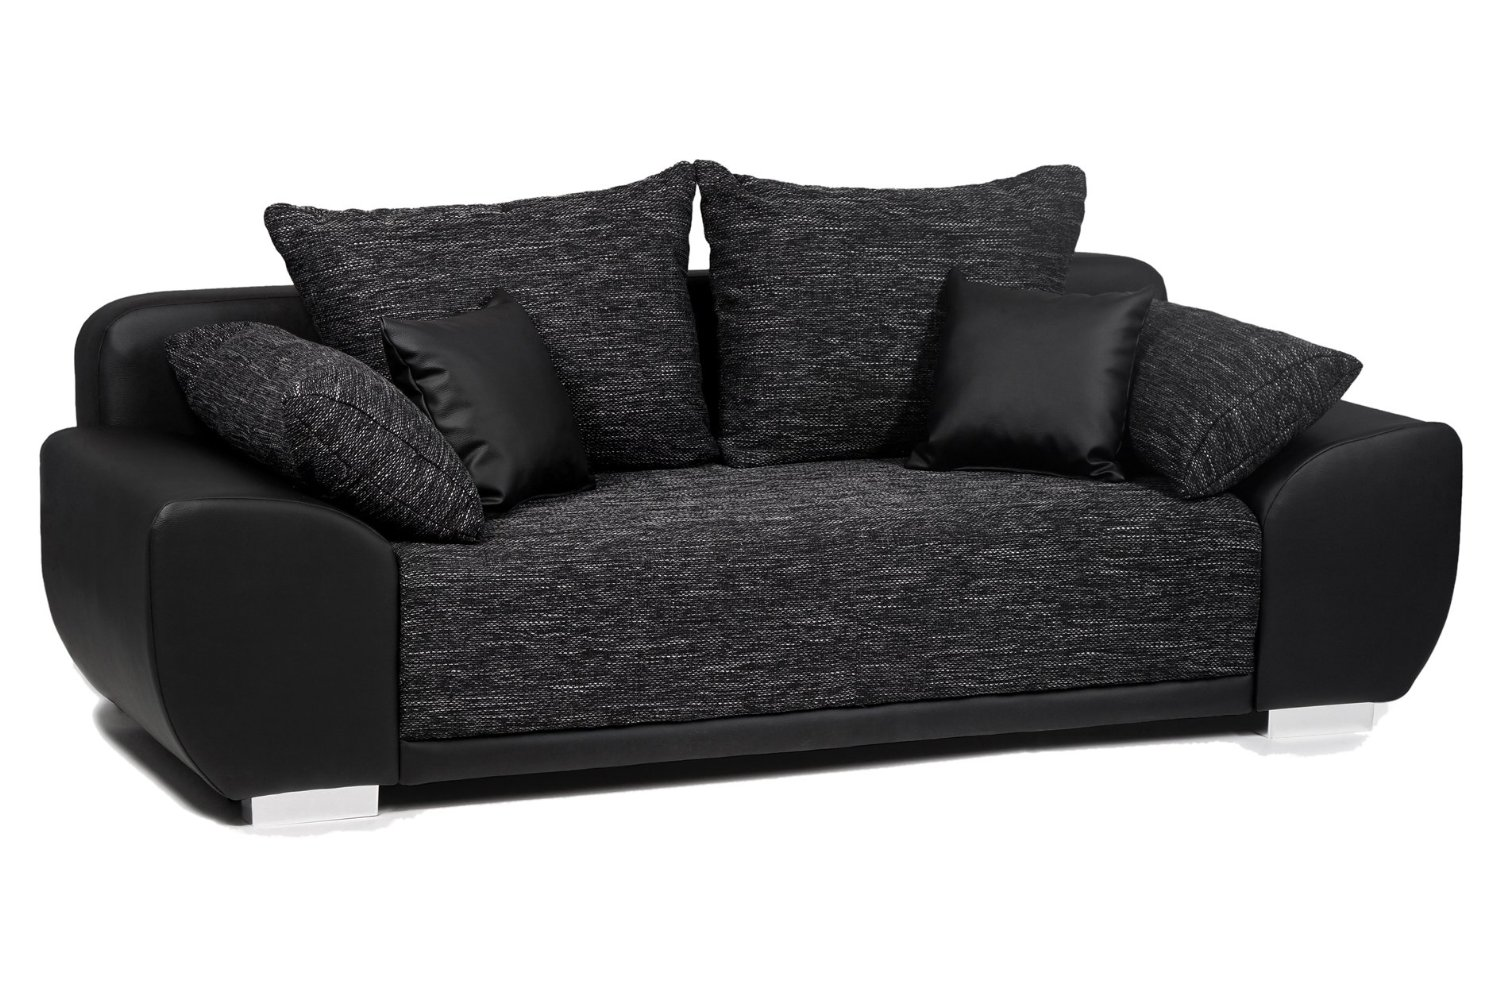 schlafsofas im test schlafsofas im test haus planen. Black Bedroom Furniture Sets. Home Design Ideas